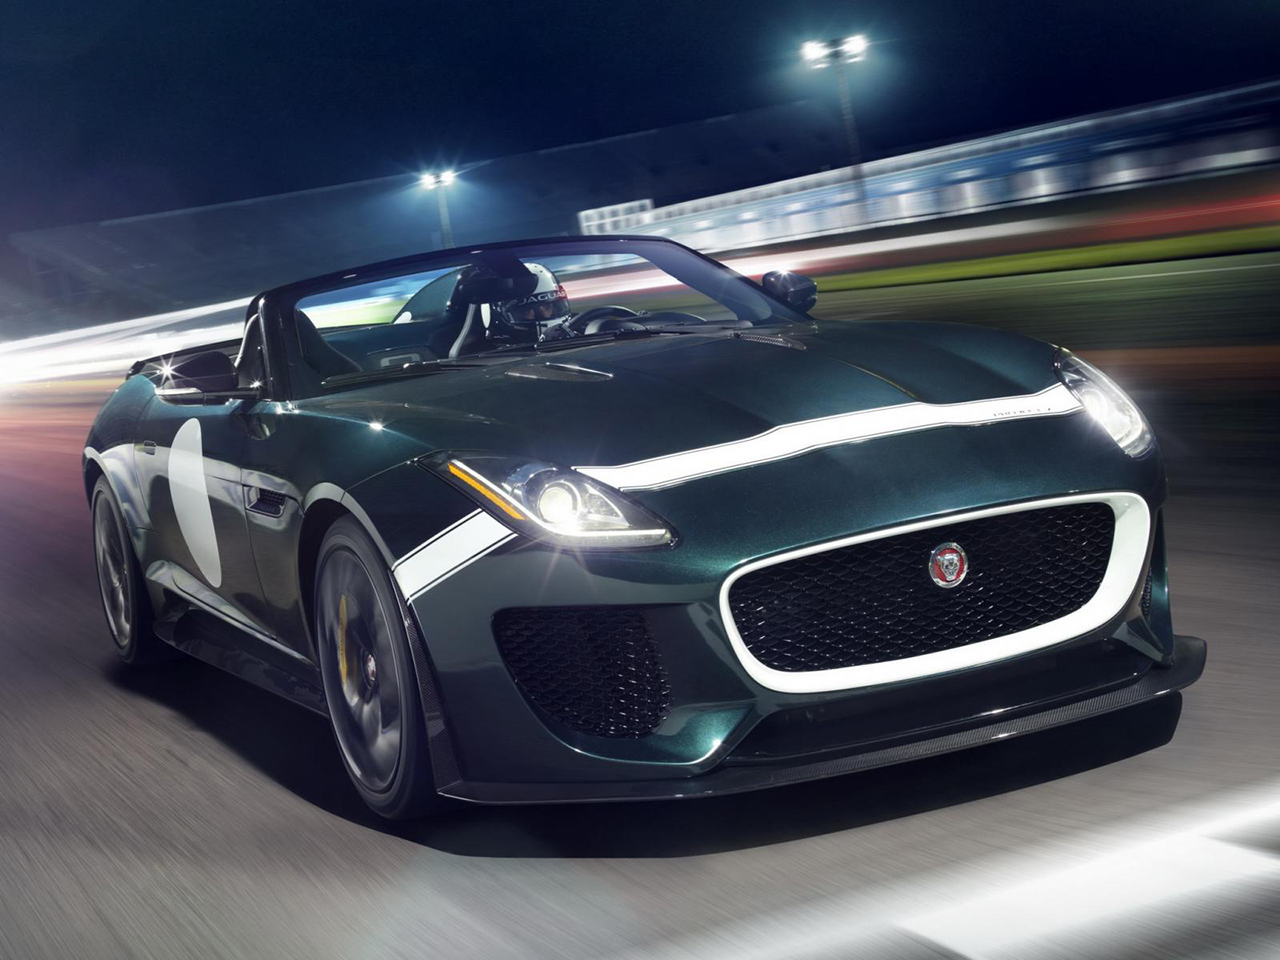 2015 jaguar f type project 7 15 egmcartech. Black Bedroom Furniture Sets. Home Design Ideas